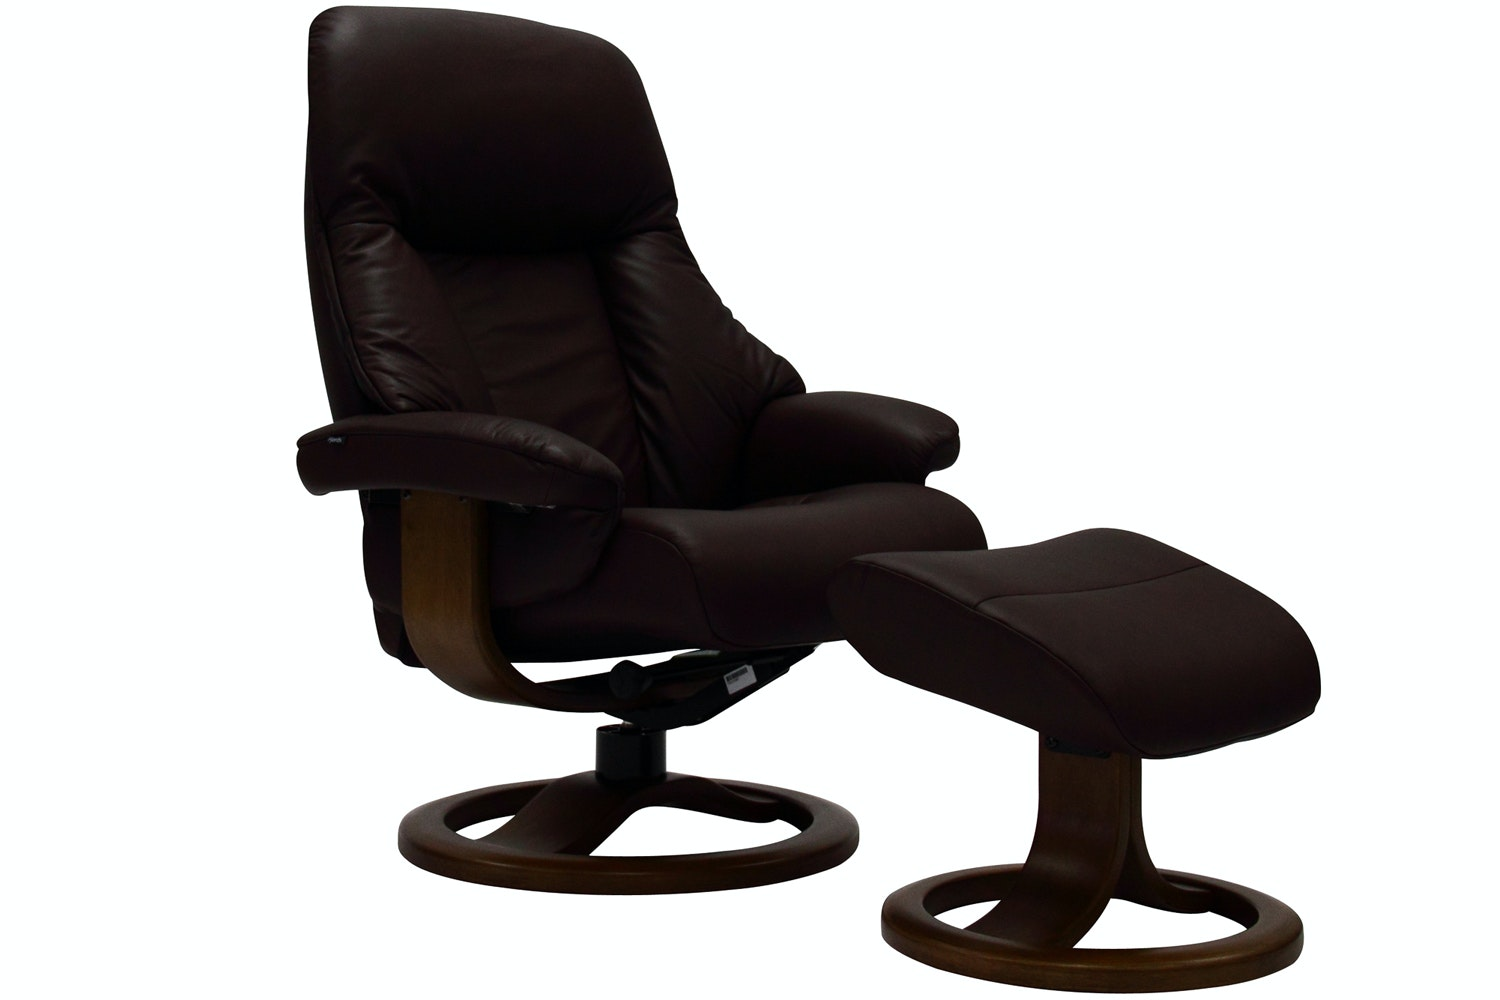 Targa Chair with Stool | Brown Leather with Espresso Base